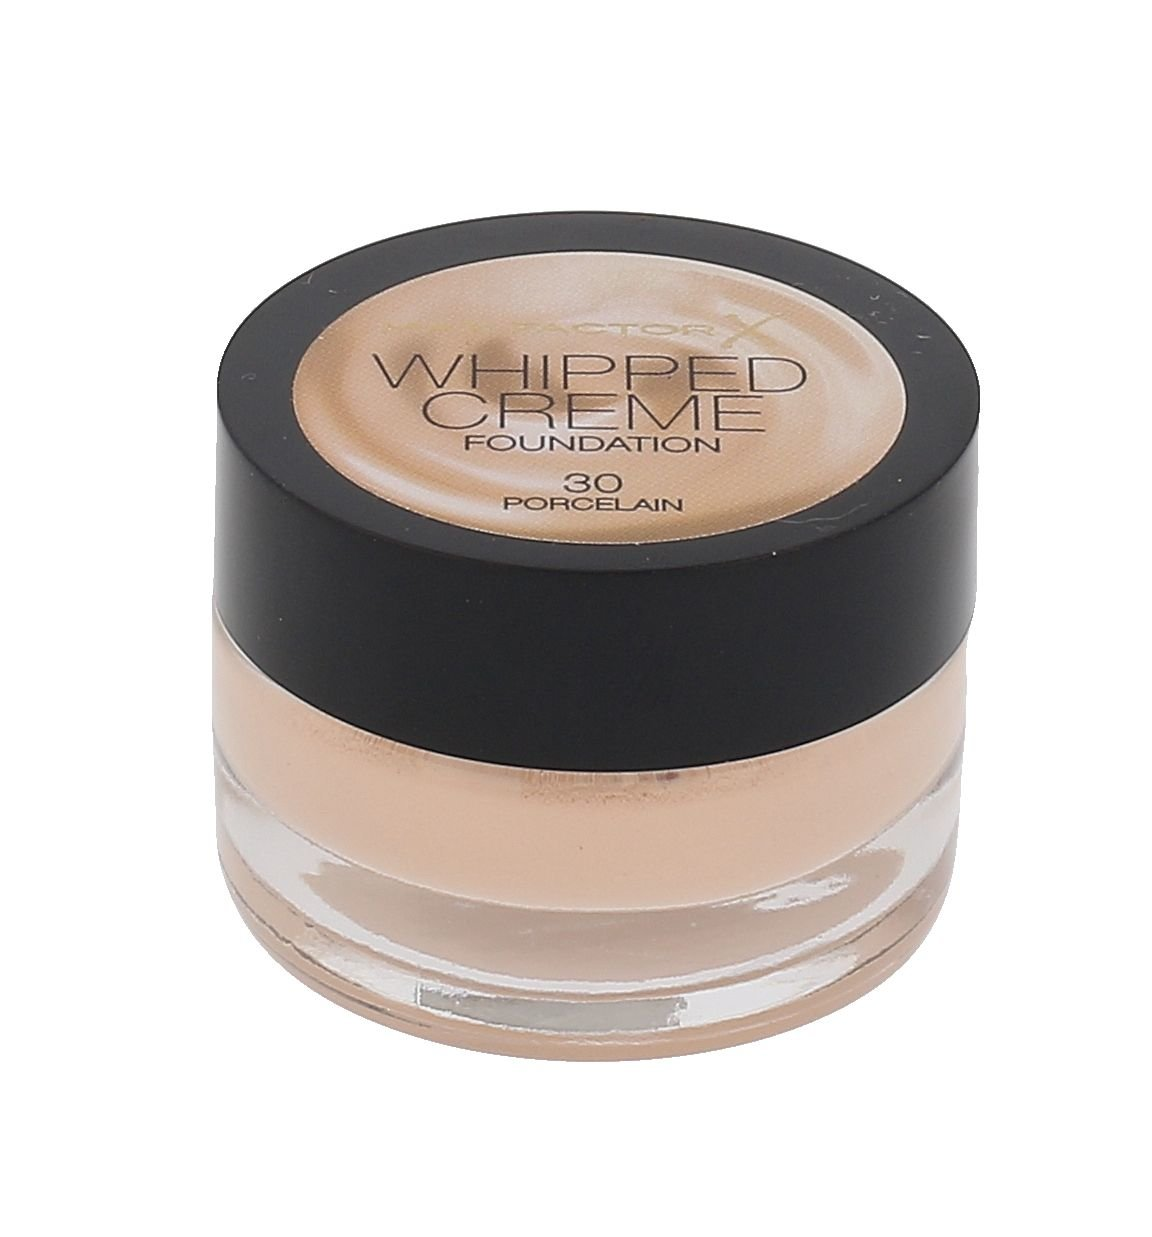 Max Factor Whipped Creme Cosmetic 18ml 30 Porcelain